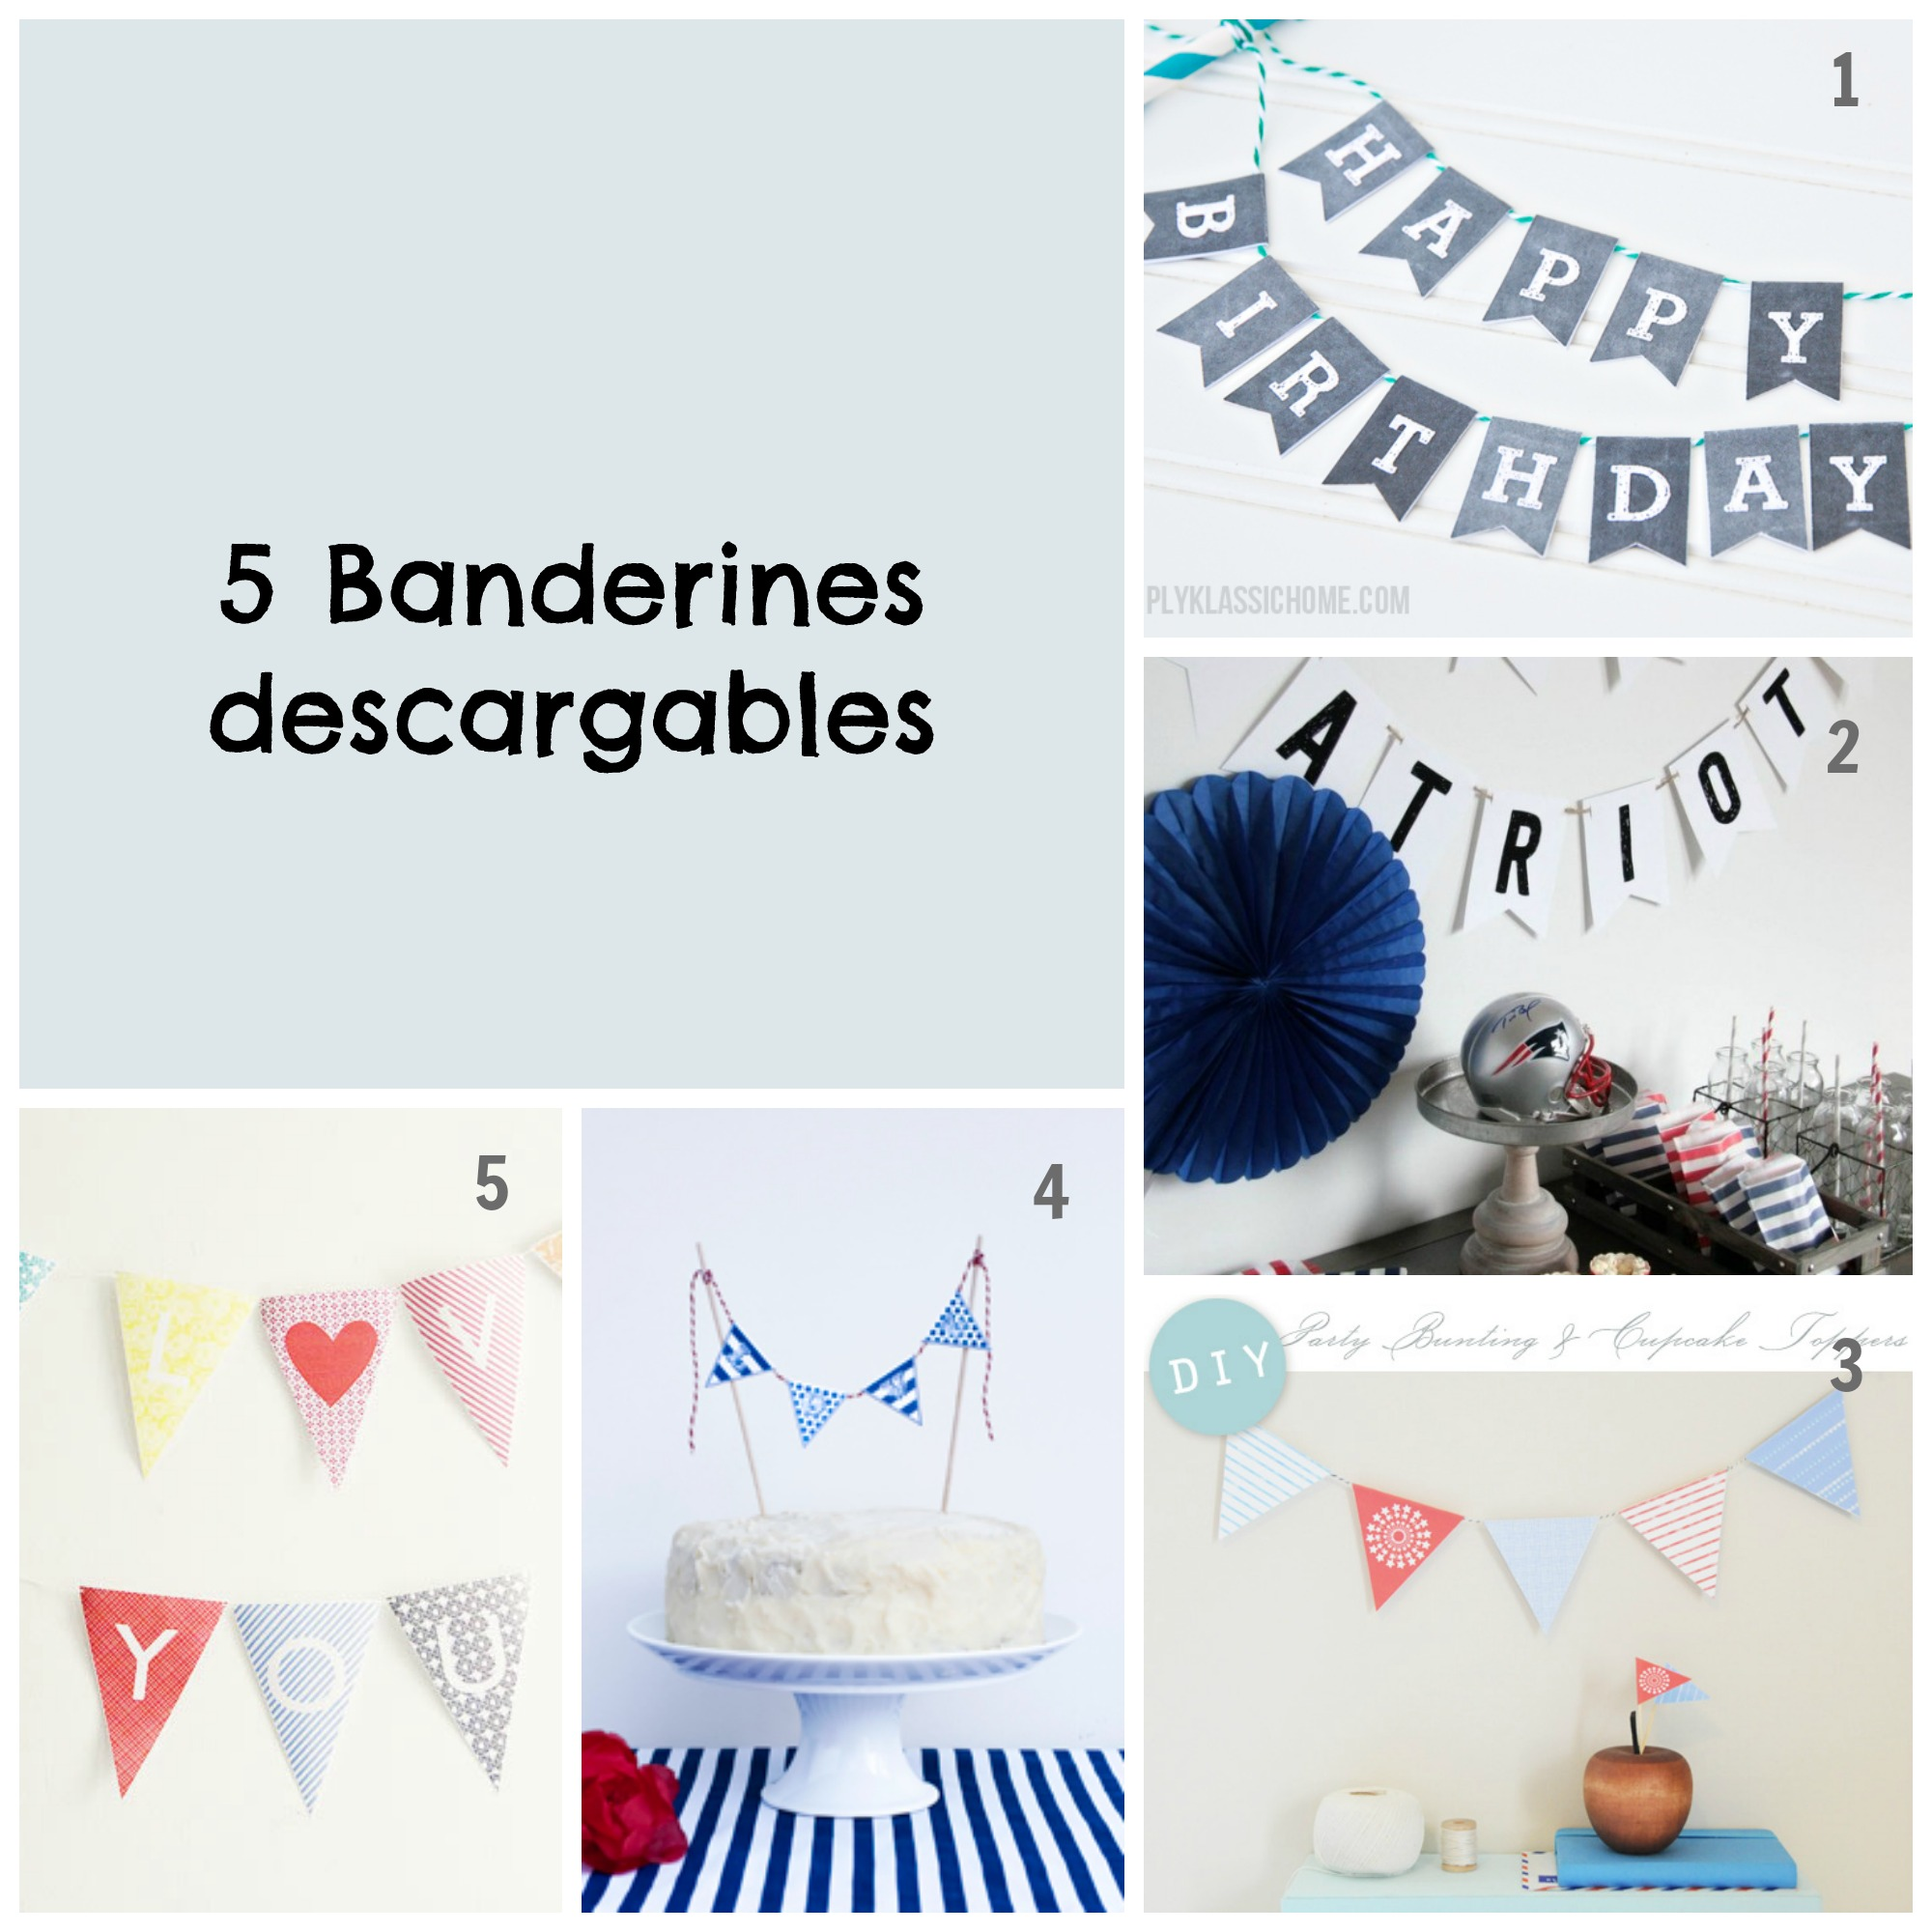 Banderines descargables | Pepita Pancracia